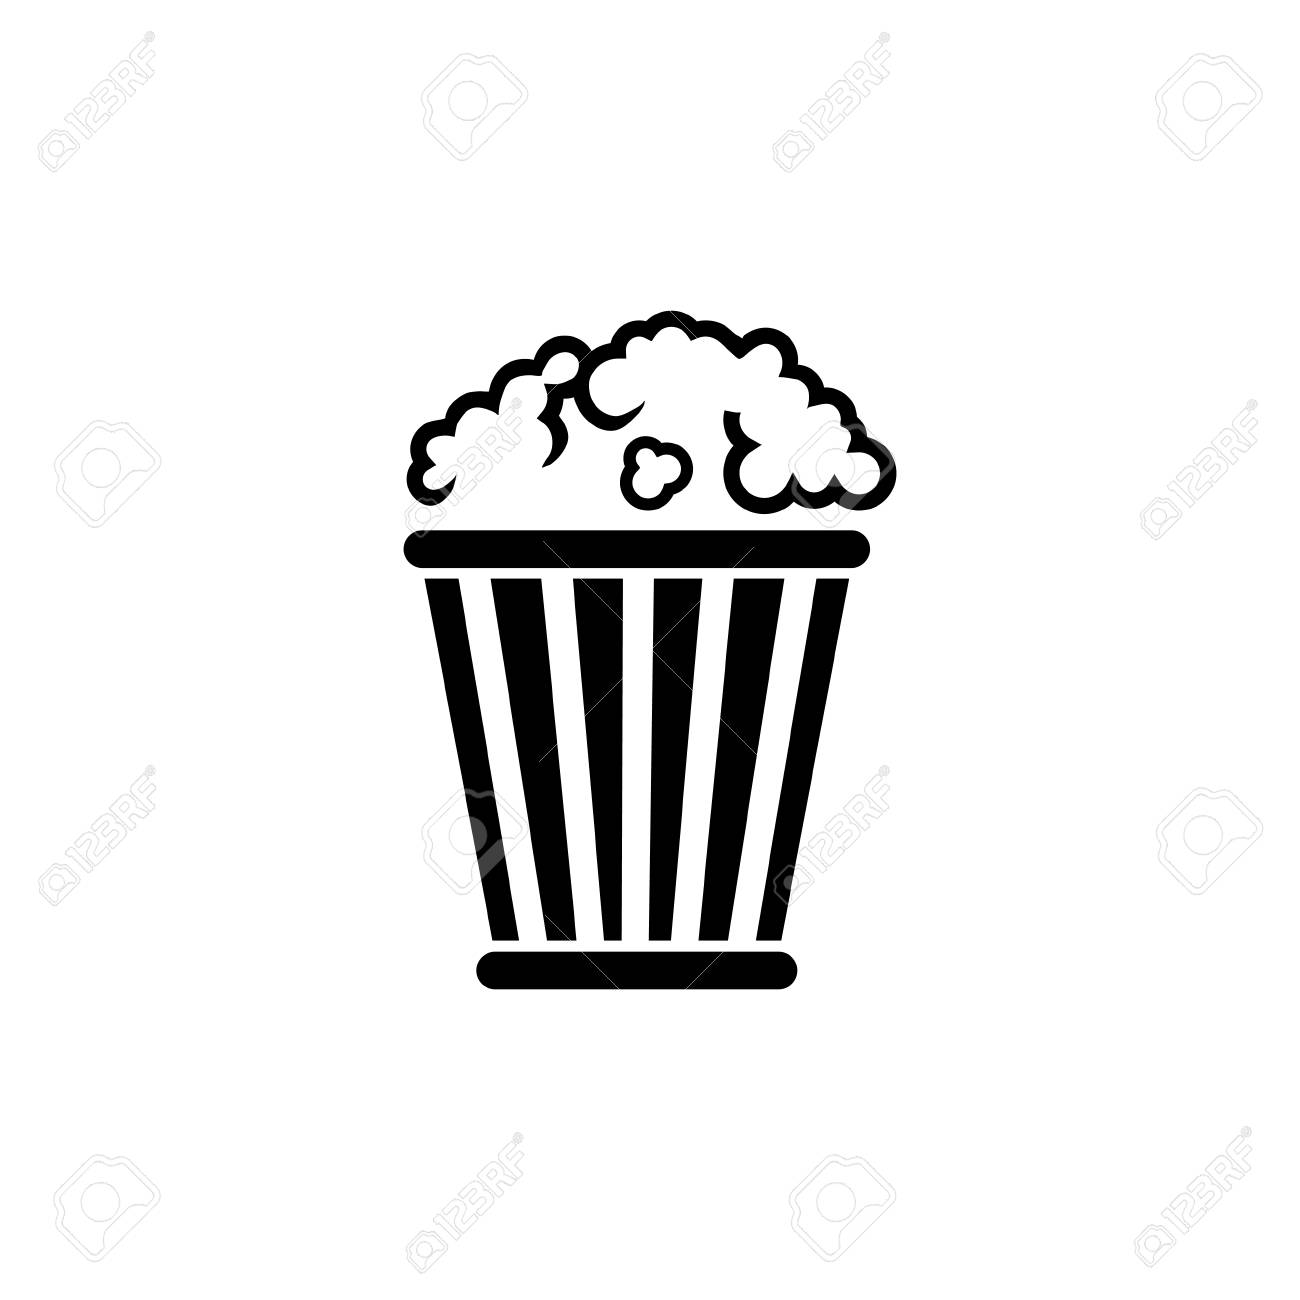 Popcorn Bucket Pop Corn Box Flat Vector Icon Illustration